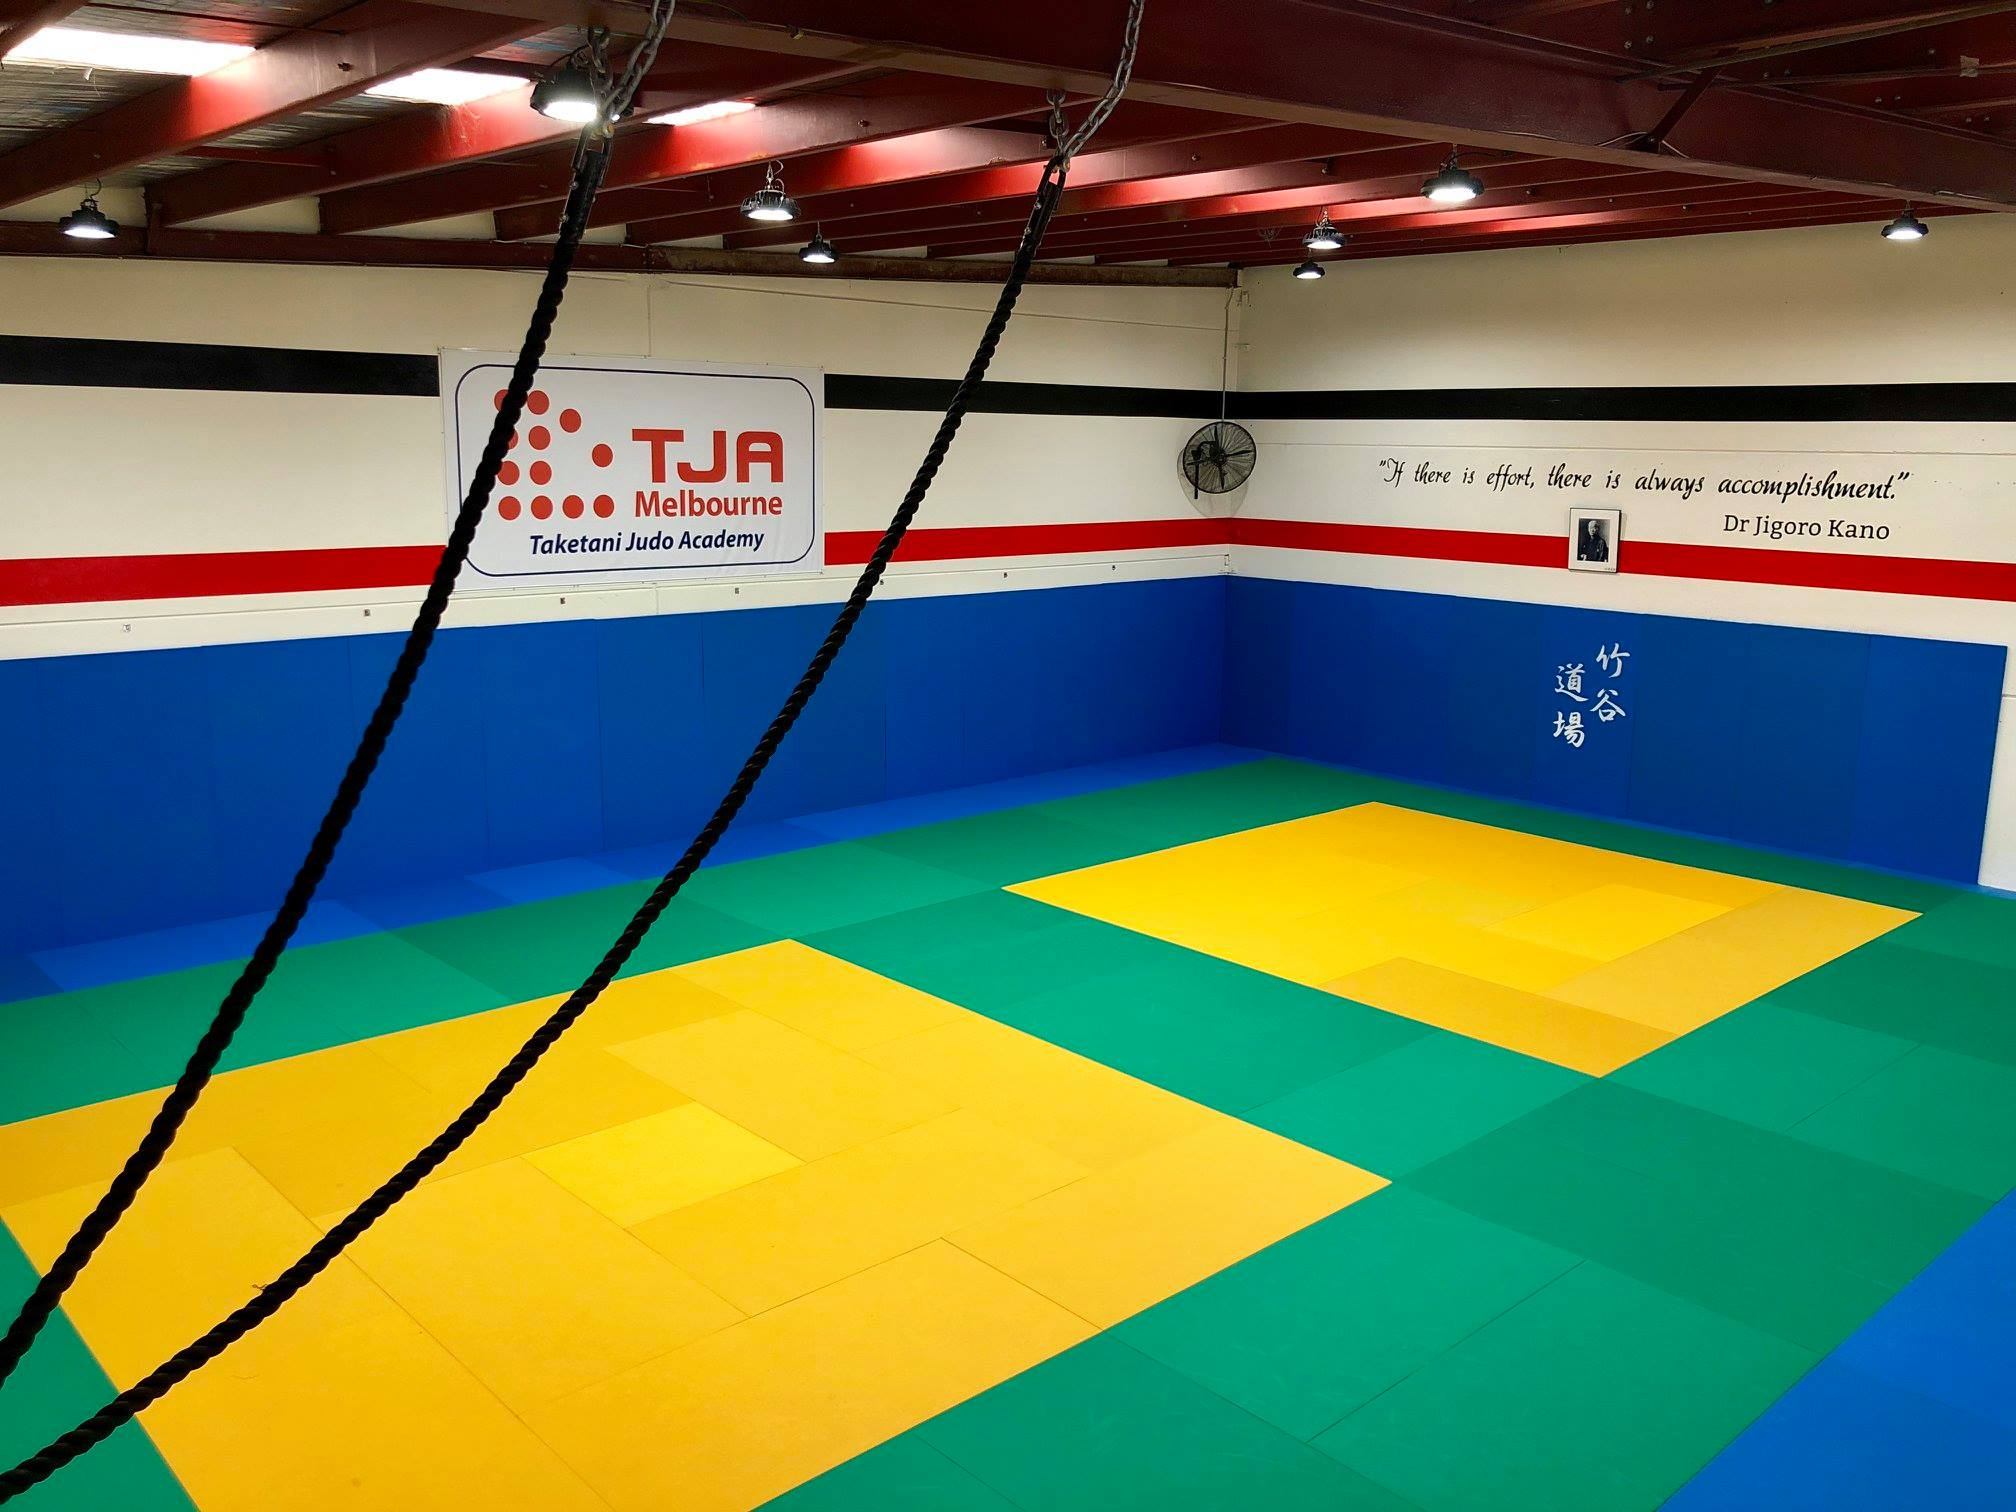 New location for Taketani Judo academy in south oakleigh